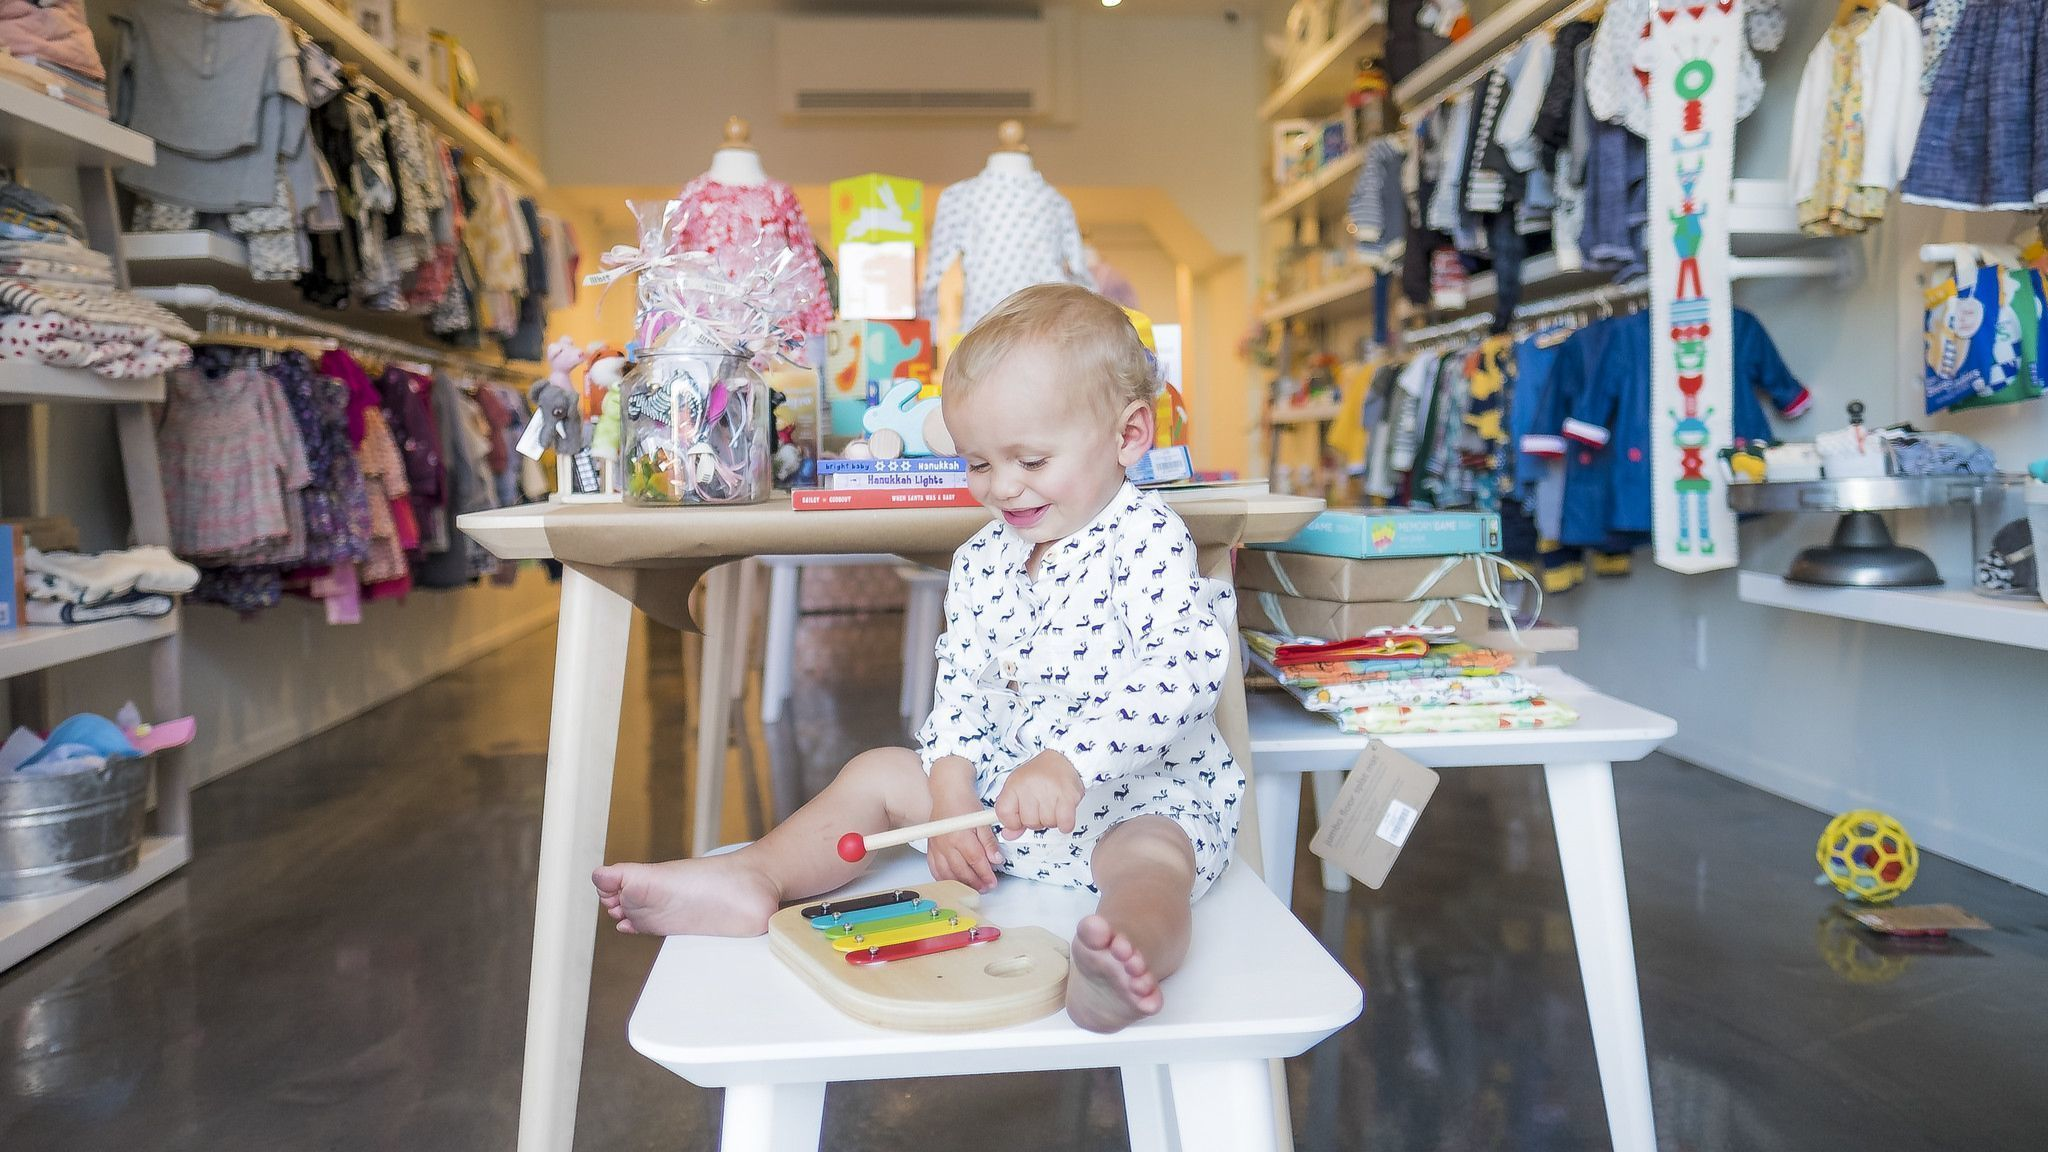 Co-owner Jill Lincoln's son, Charlie, at the Lil Bit children's store in Los Angeles.